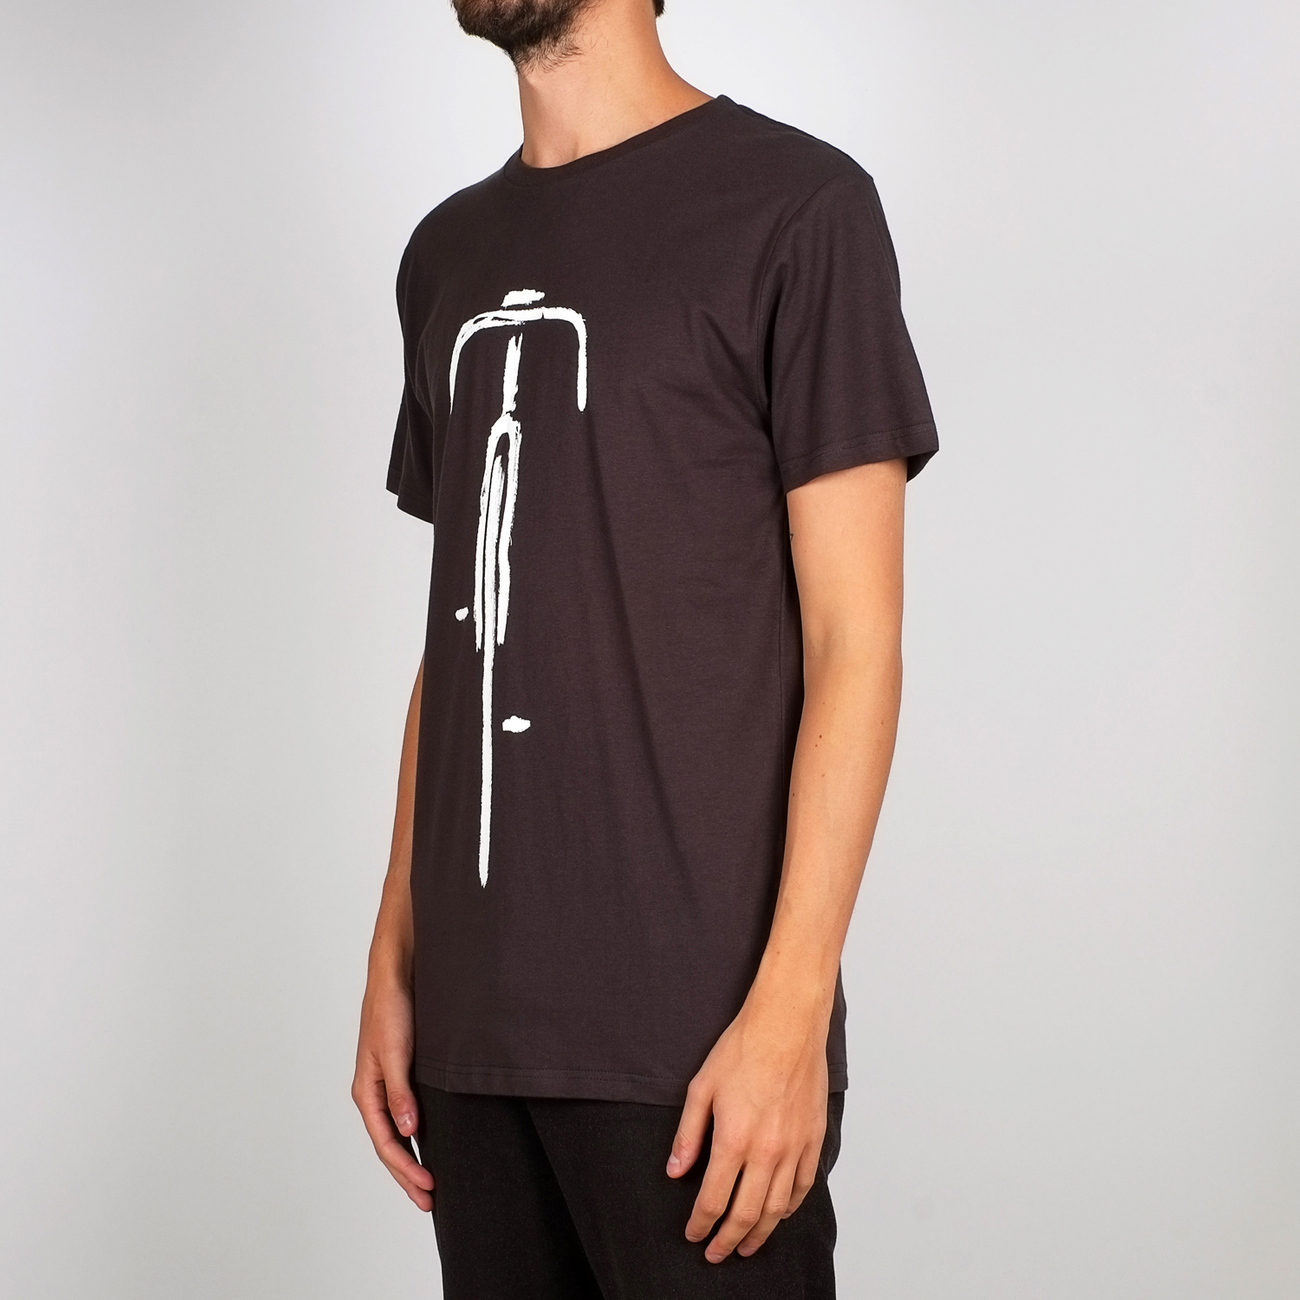 T-shirt Stockholm Bike Front Charcoal